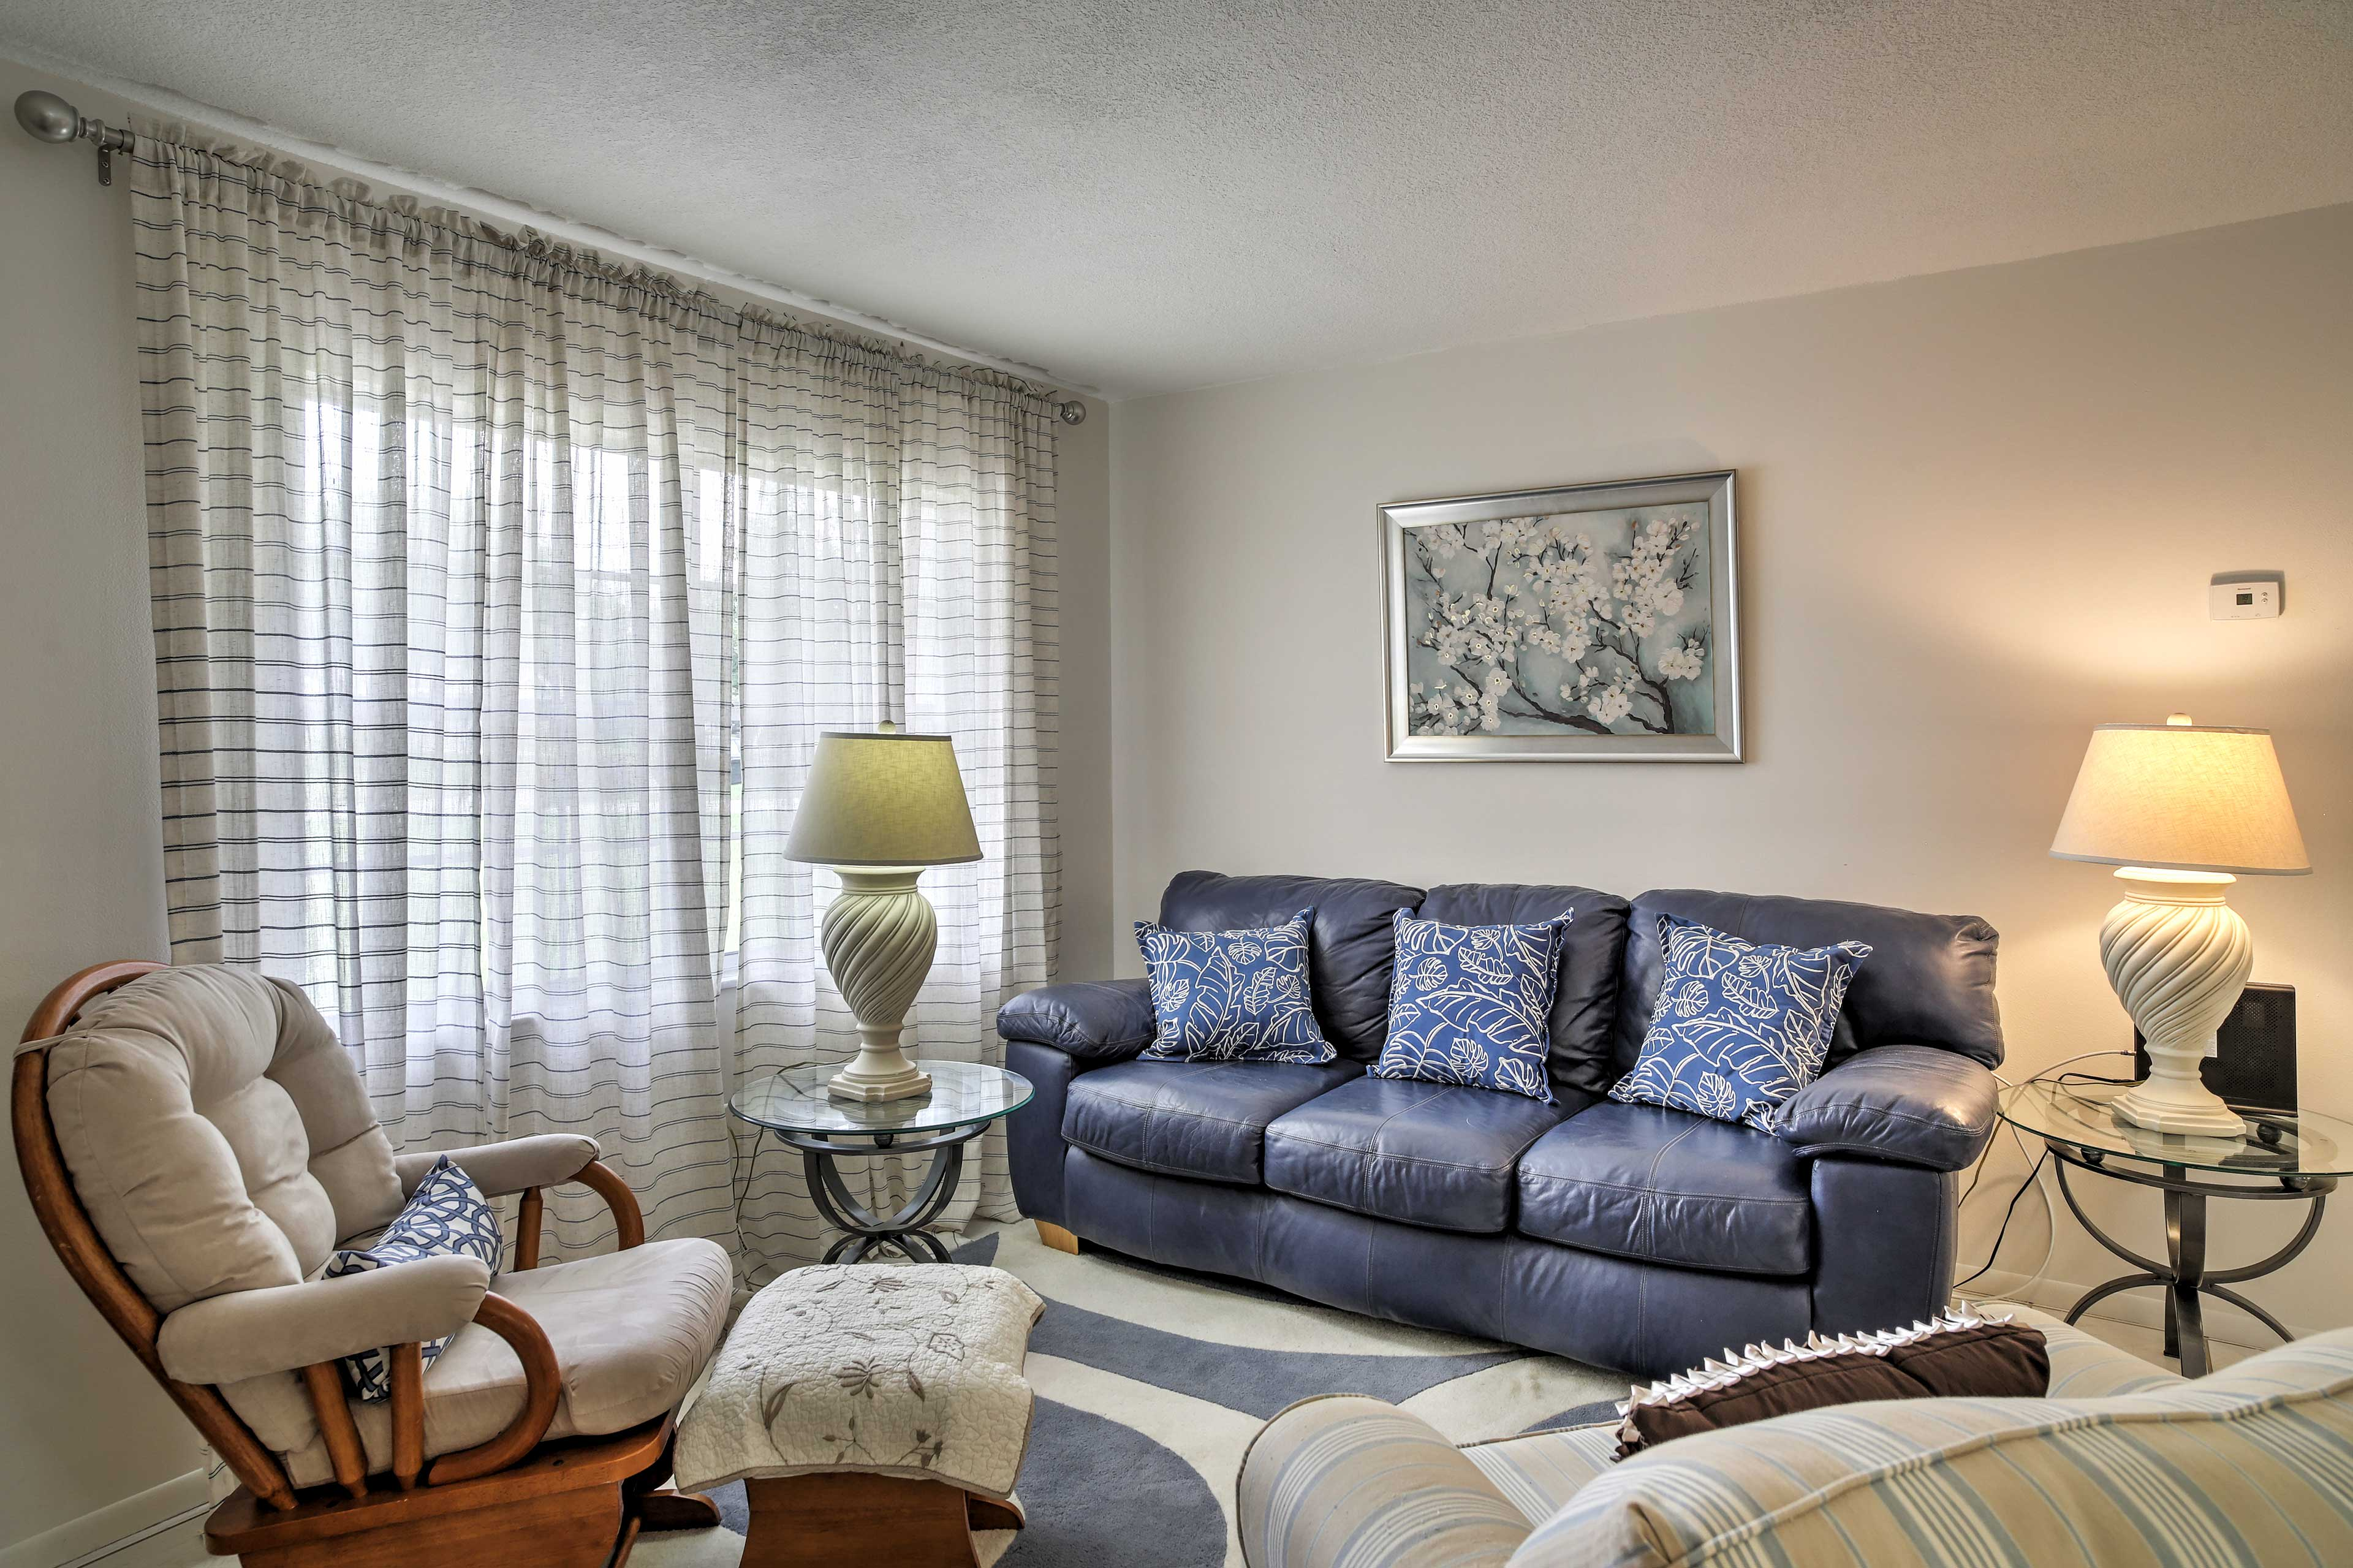 The tastefully decorated living space provides everything you'll need.